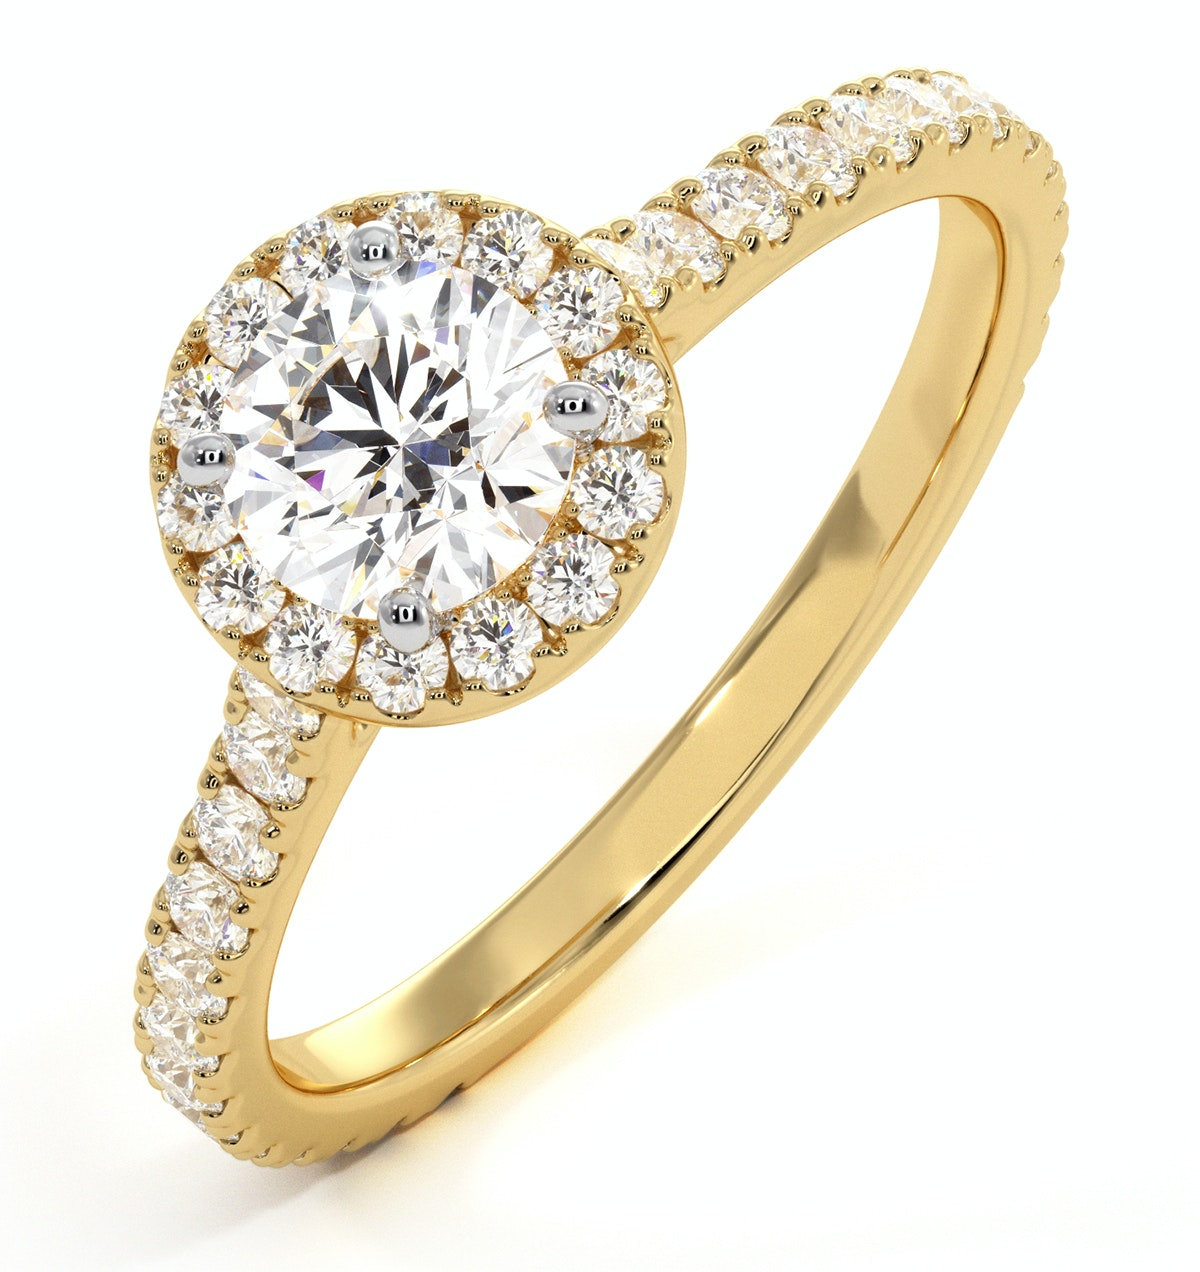 Reina GIA Diamond Halo Engagement Ring in 18K Gold 1.10ct G/SI1